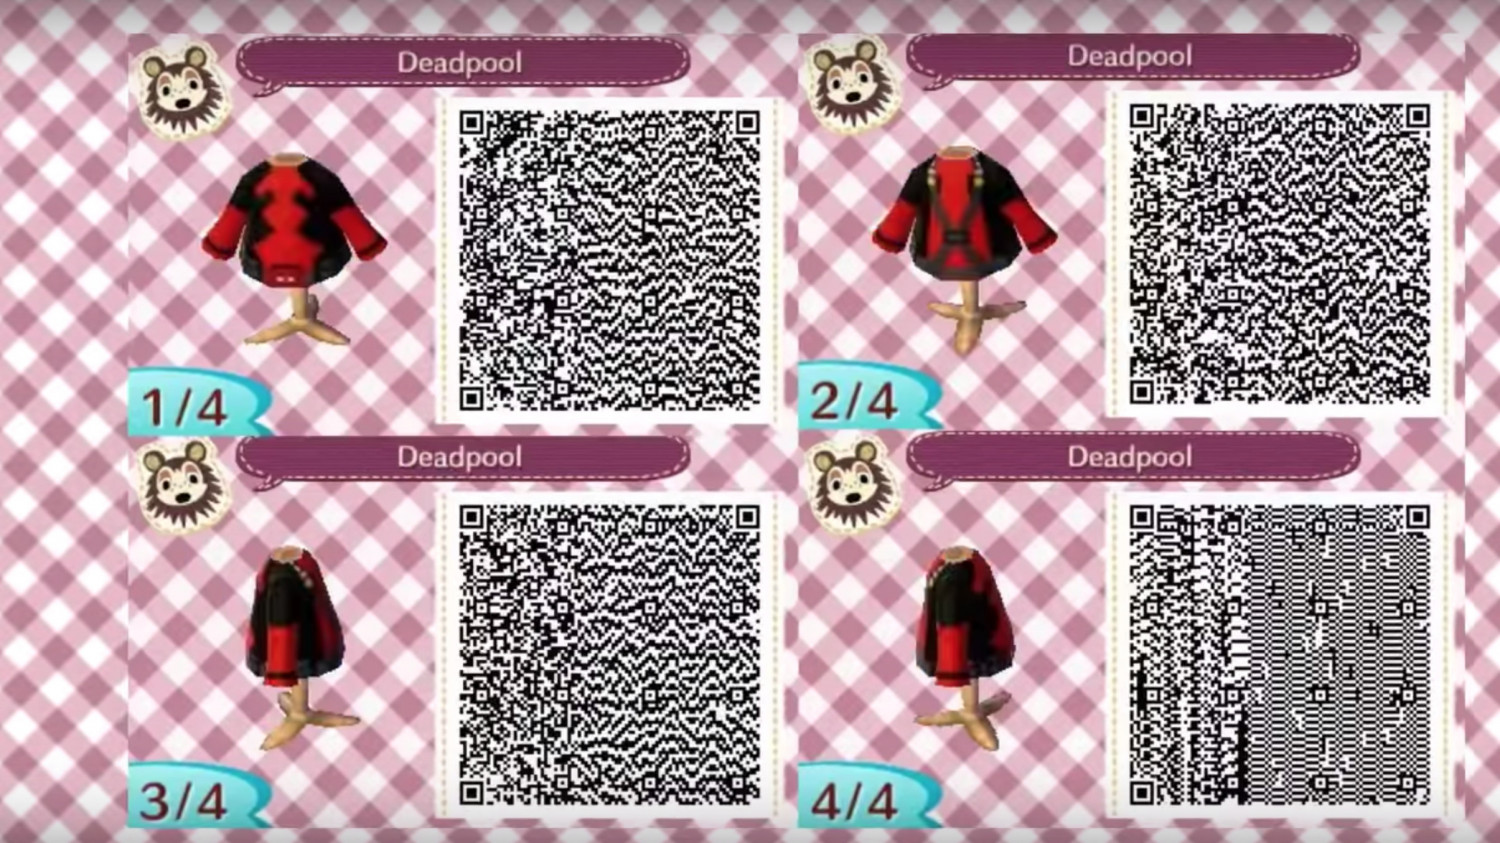 Host An Avengers X Animal Crossing New Horizons Party With These Codes Geek Culture